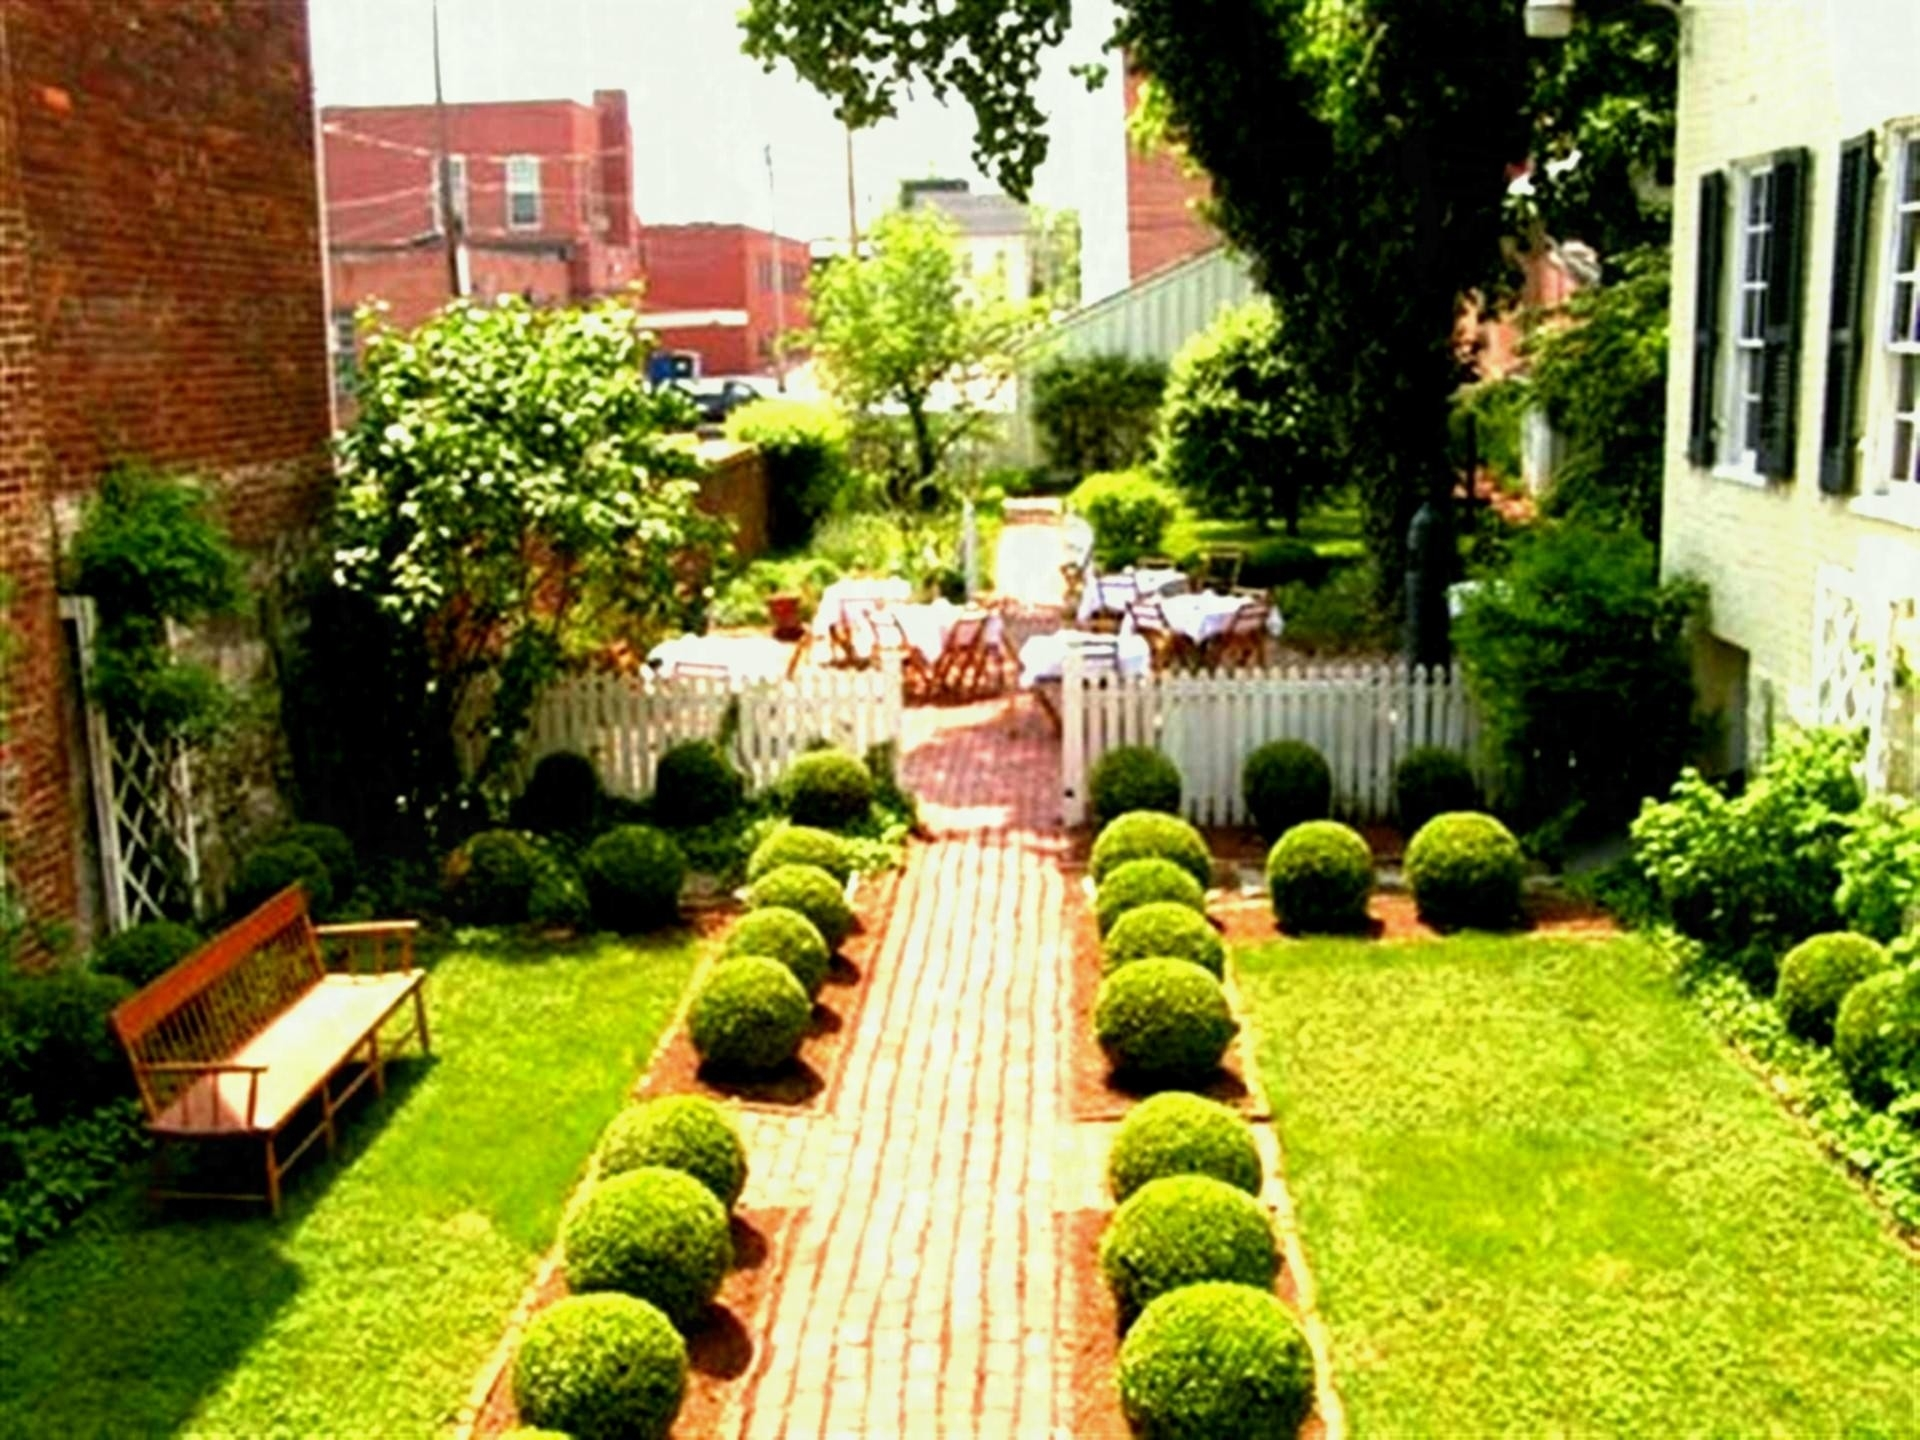 Home Garden Ideas Design Pictures Vegetable India S In Sri Lanka regarding Home Garden Design Sri Lanka